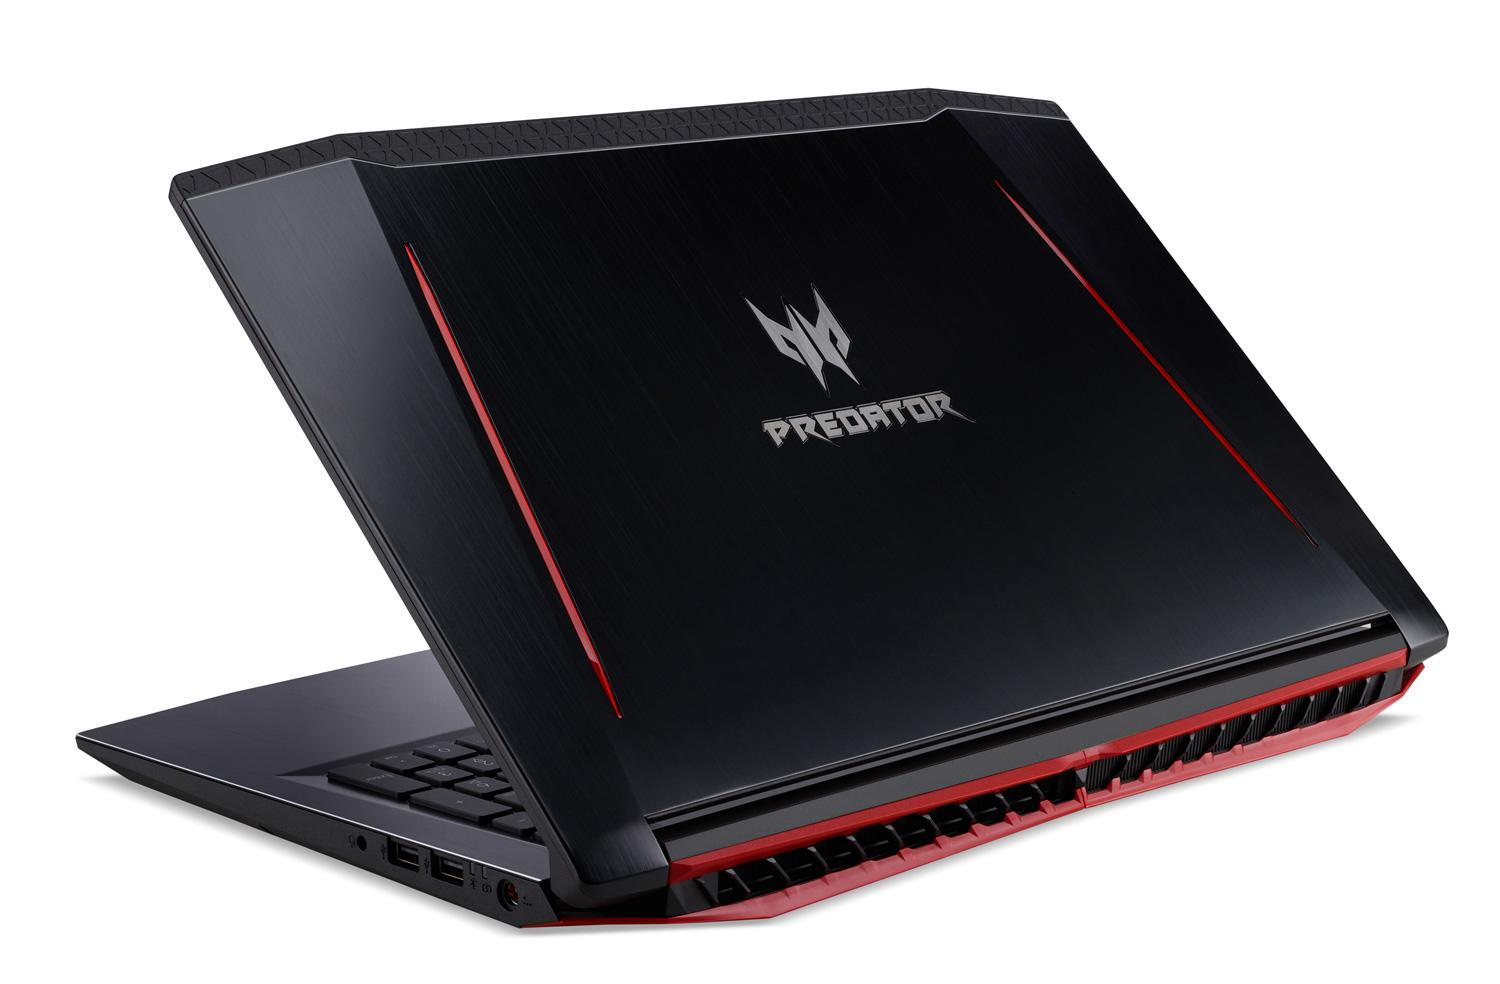 Image du PC portable Acer Predator Helios PH315-51-58KC